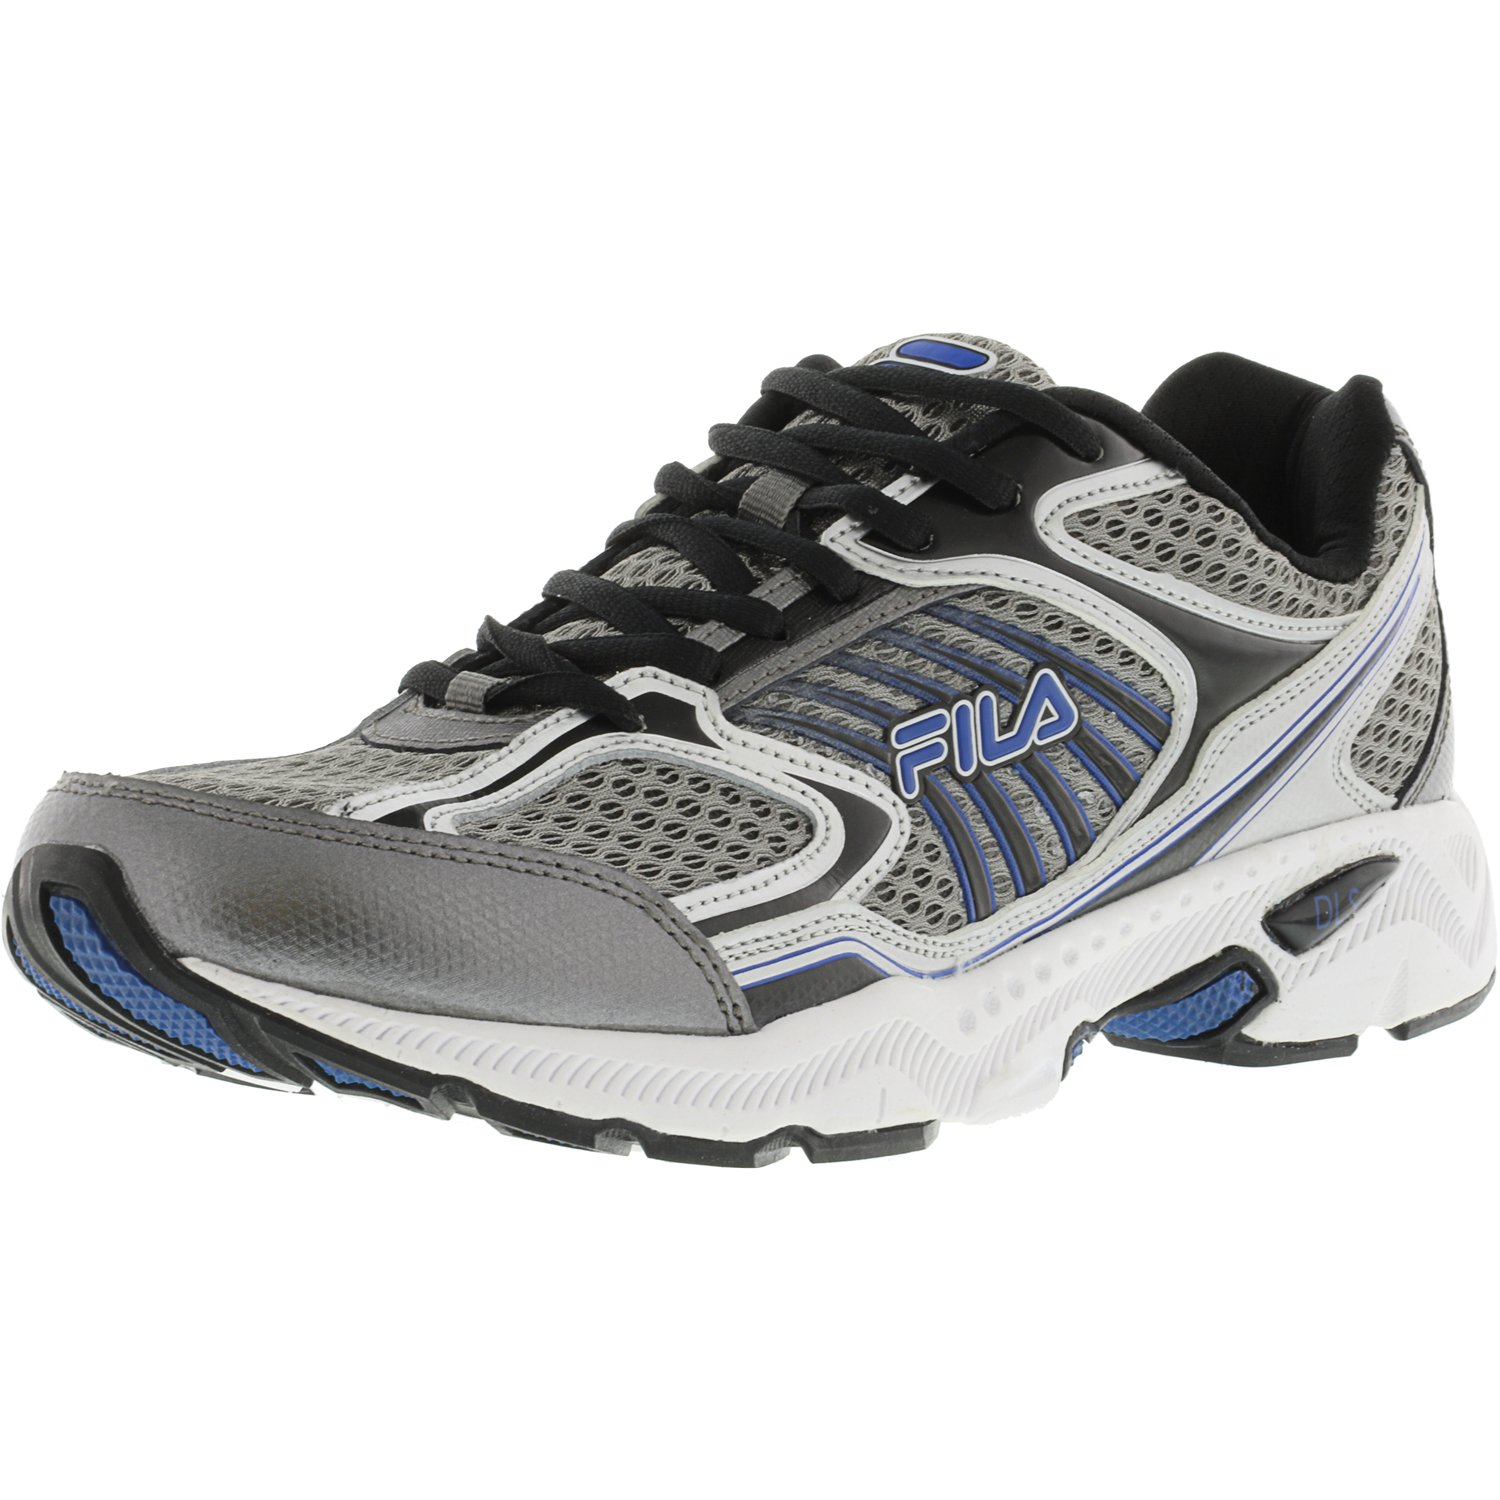 Fila Men's Memory Inspell Dark Silver   Black Prince Blue Ankle-High Running Shoe 13M by Fila